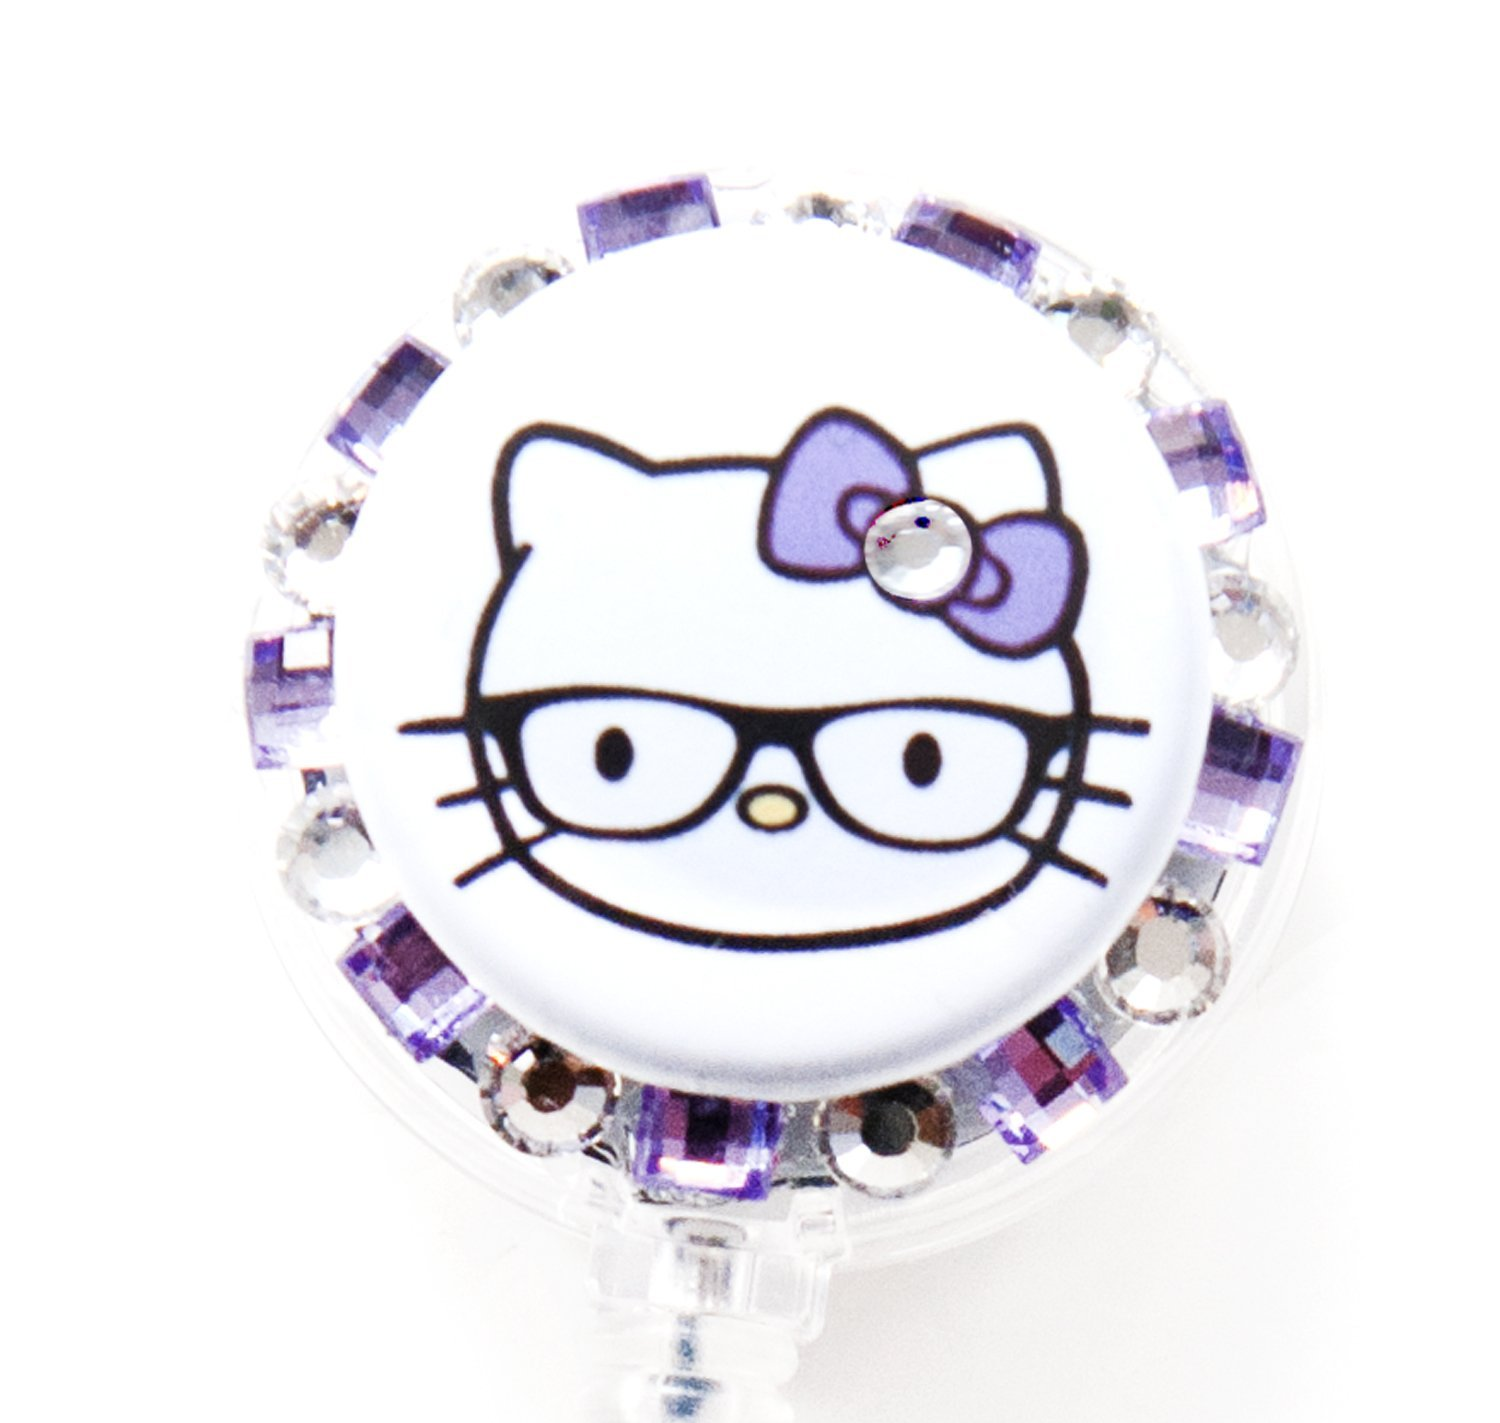 df0b1ac25 Get Quotations · Nerd Hello Kitty RHINESTONE BADGE REEL, RHINESTONE PENDANT  STYLE, RHINESTONE RETRACTABLE BADGE REEL,